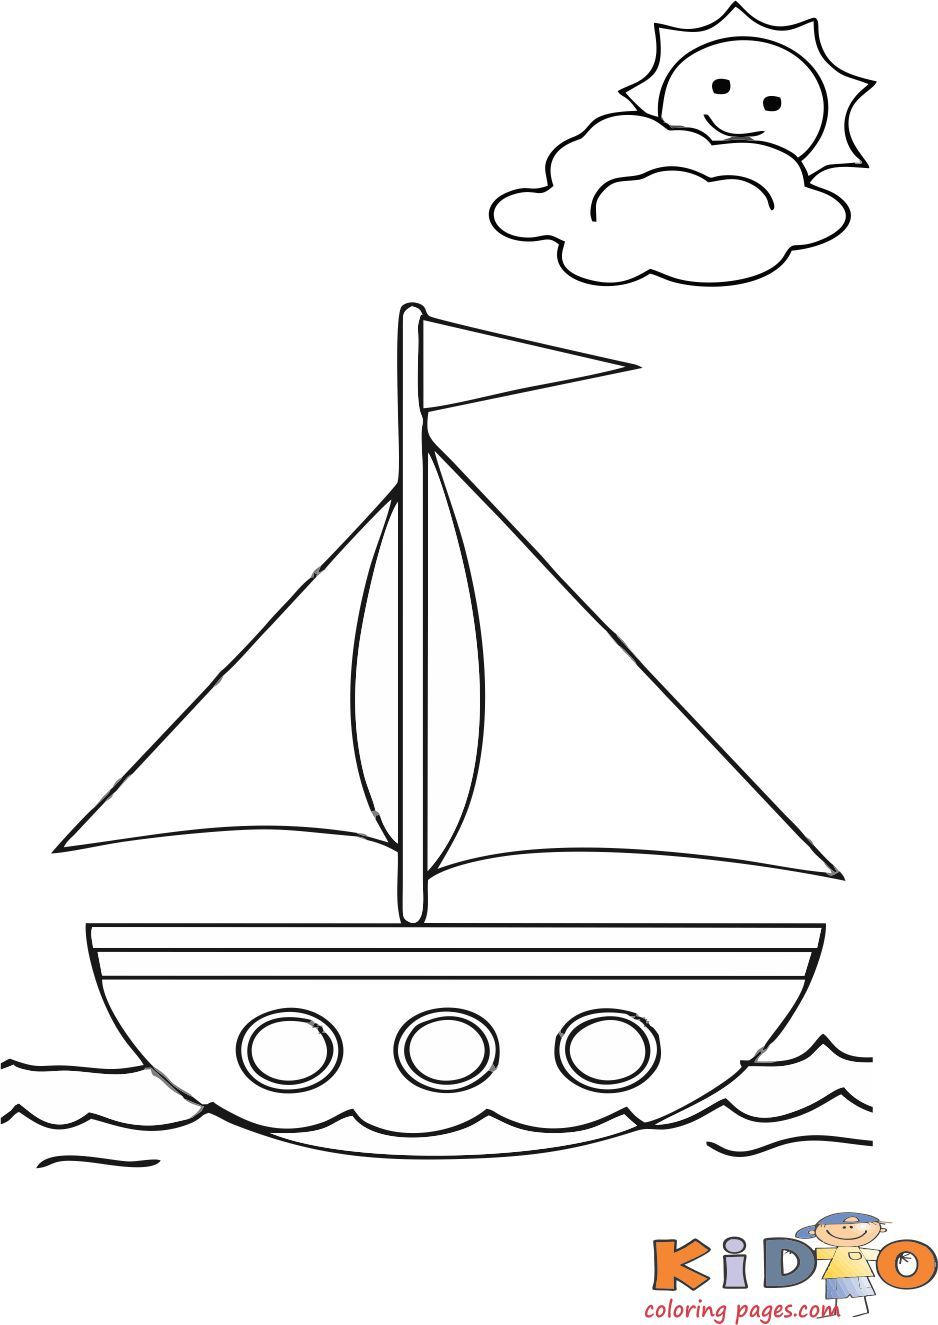 Summer Boat Coloring Pages For Kids Summer Coloring Pages Summer Coloring Sheets Coloring Pages For Kids